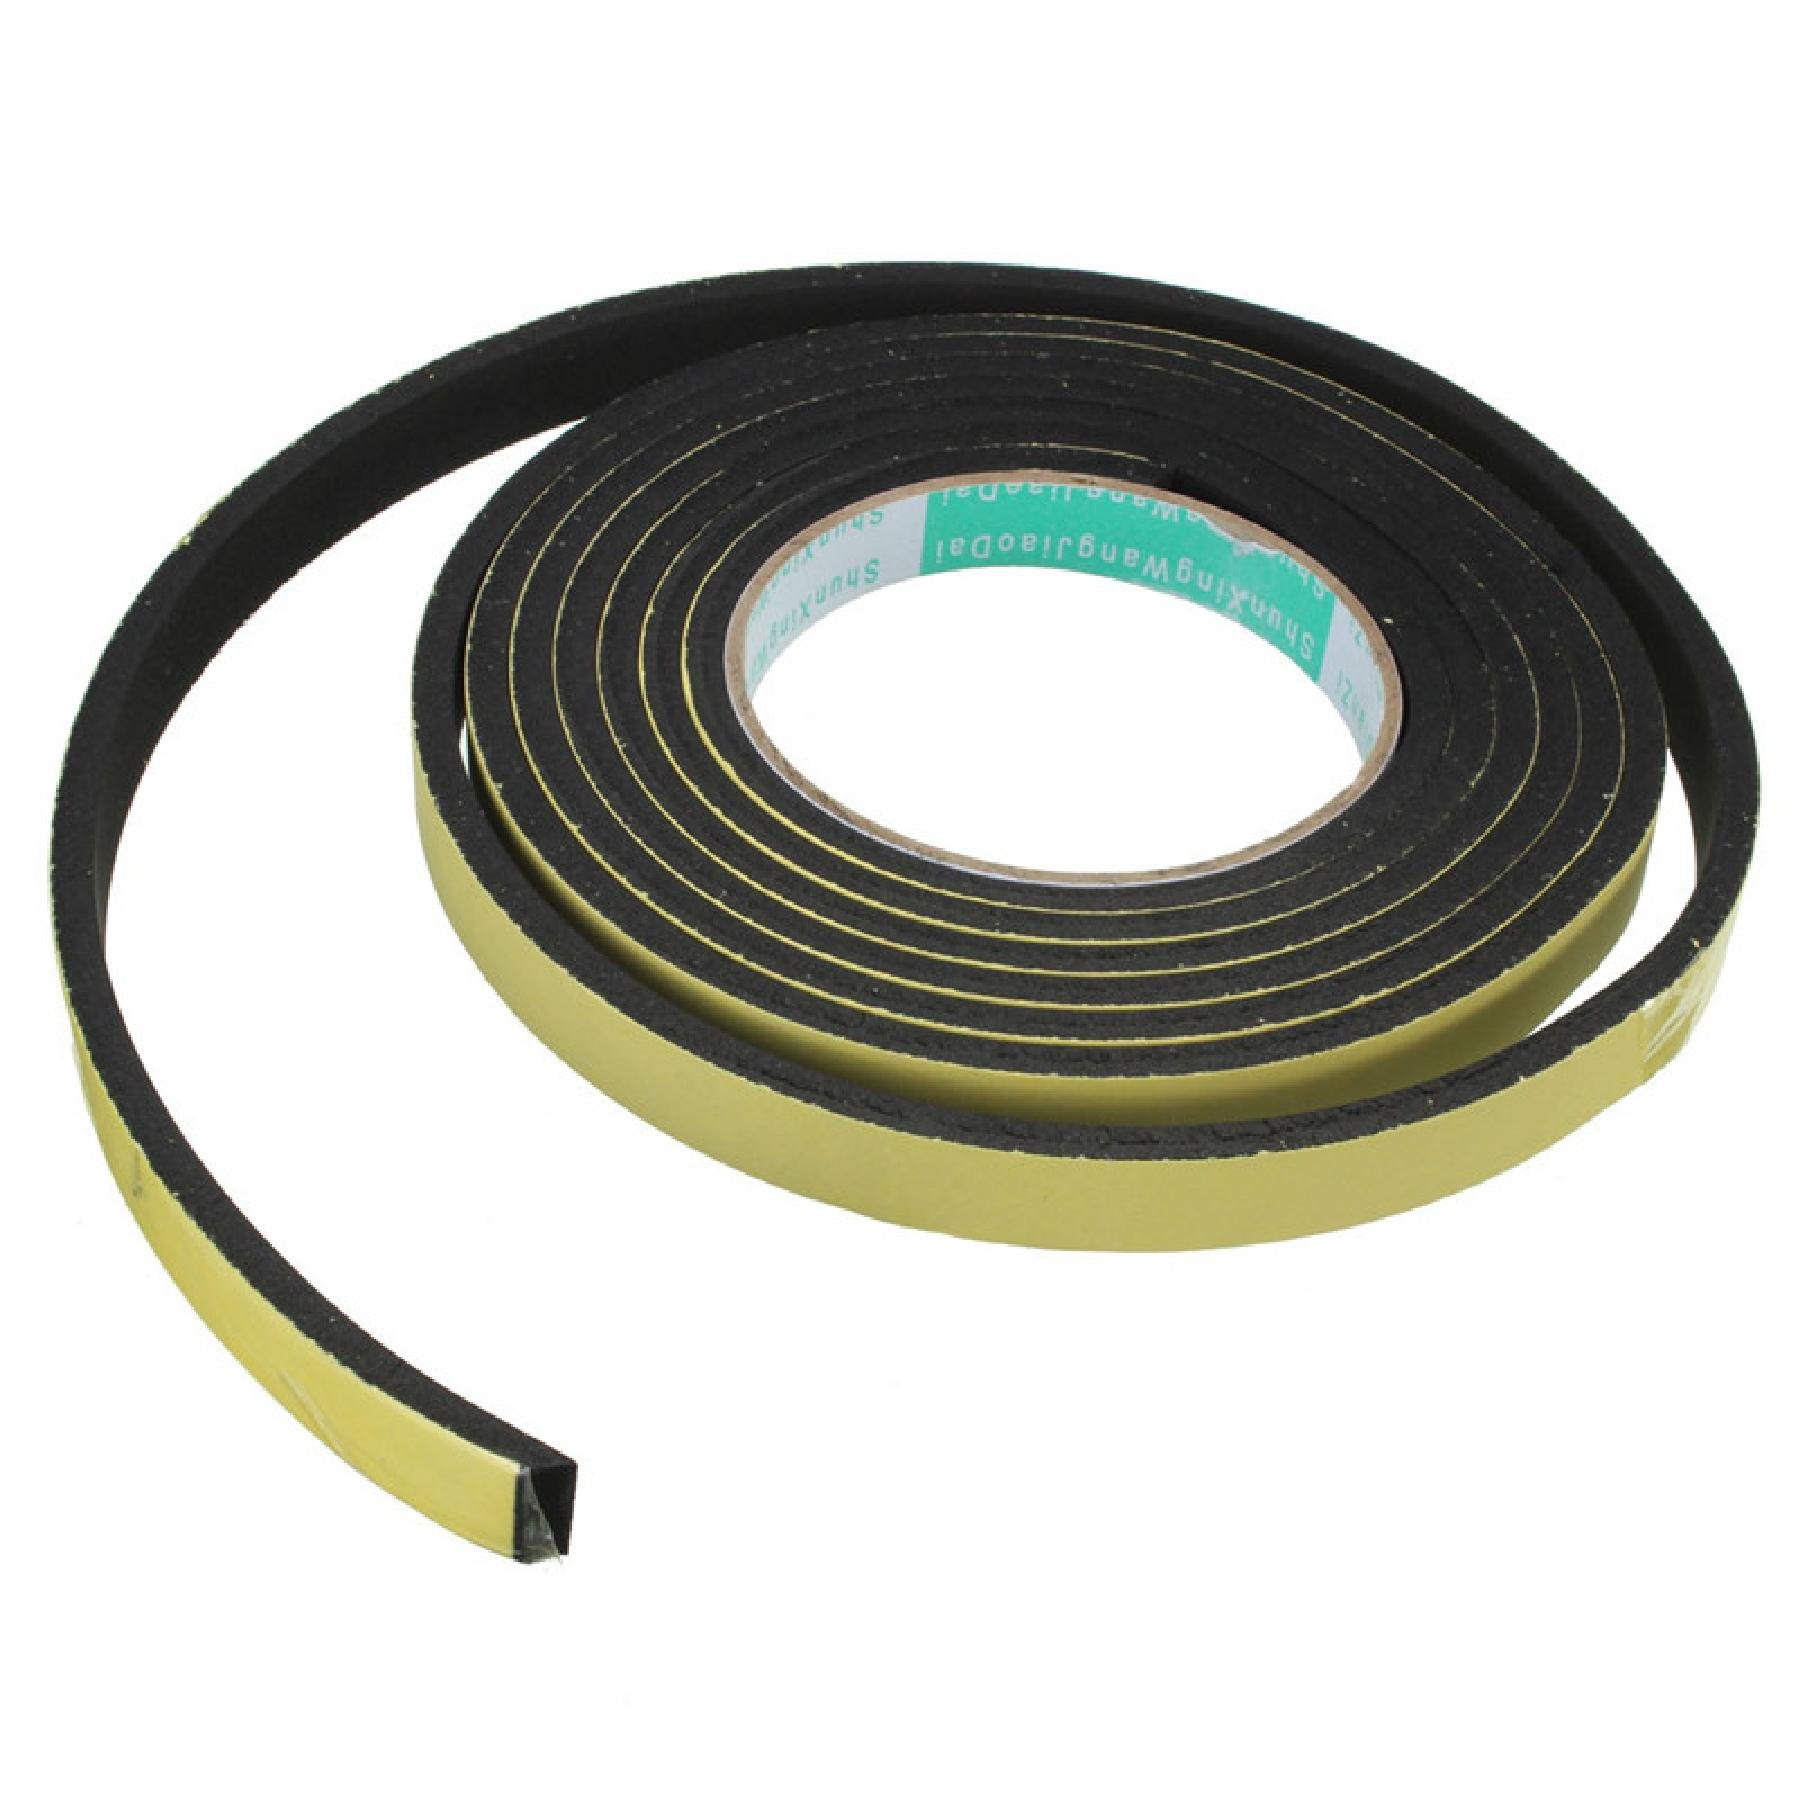 3 Meter Window Door Foam Adhesive Draught Excluder Strip Sealing Tape Adhesive Tape Rubber Weather Strip E/D/I-type